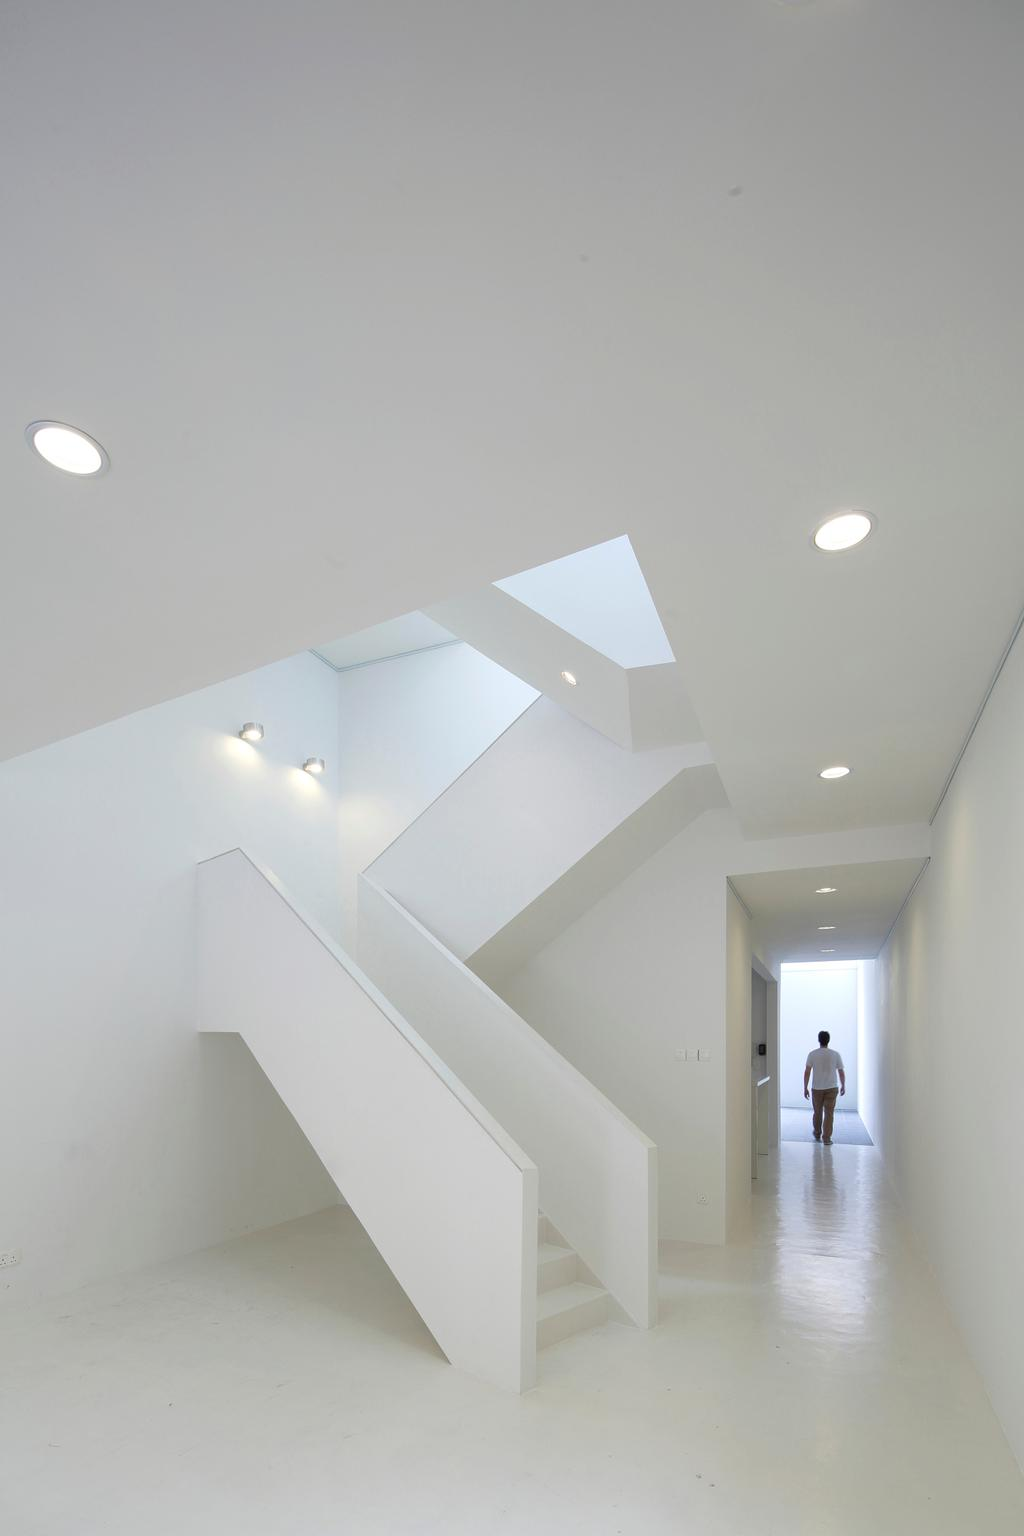 Gallery House, Commercial, Architect, Lekker Architects, Modern, Recessed Lighting, Recessed Lights, Stairway, White Stairway, Wall Lamp, White Steps